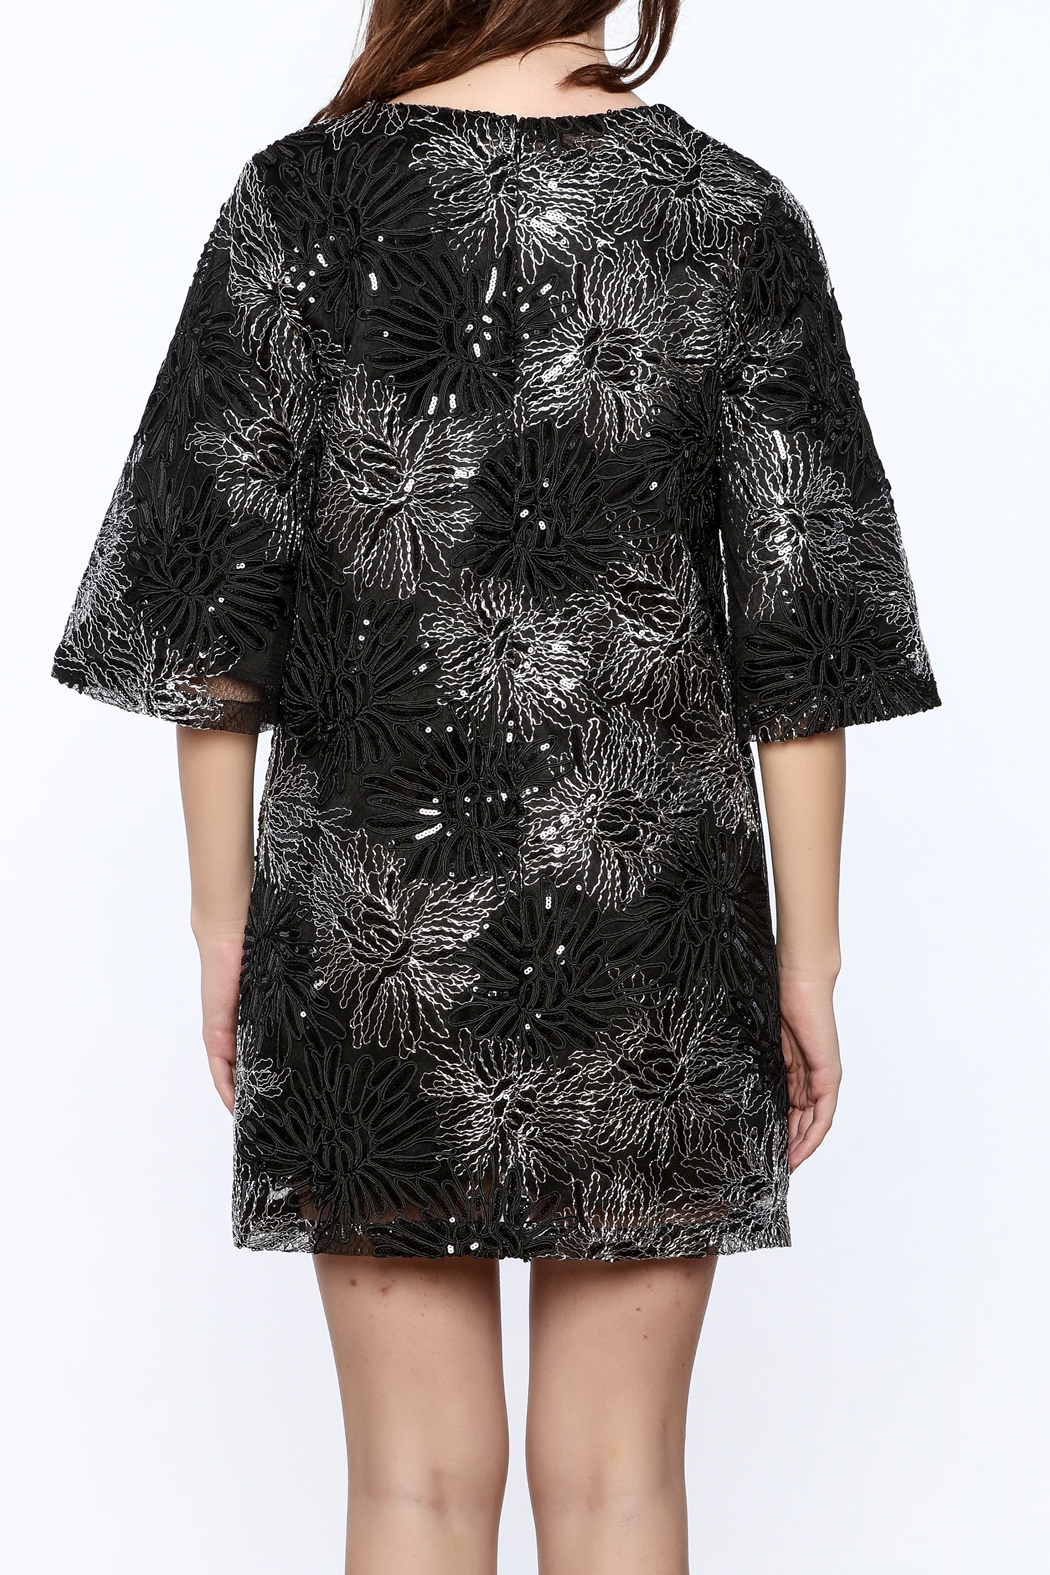 beulah Black And Silver Sequined Shift Dress - Back Cropped Image